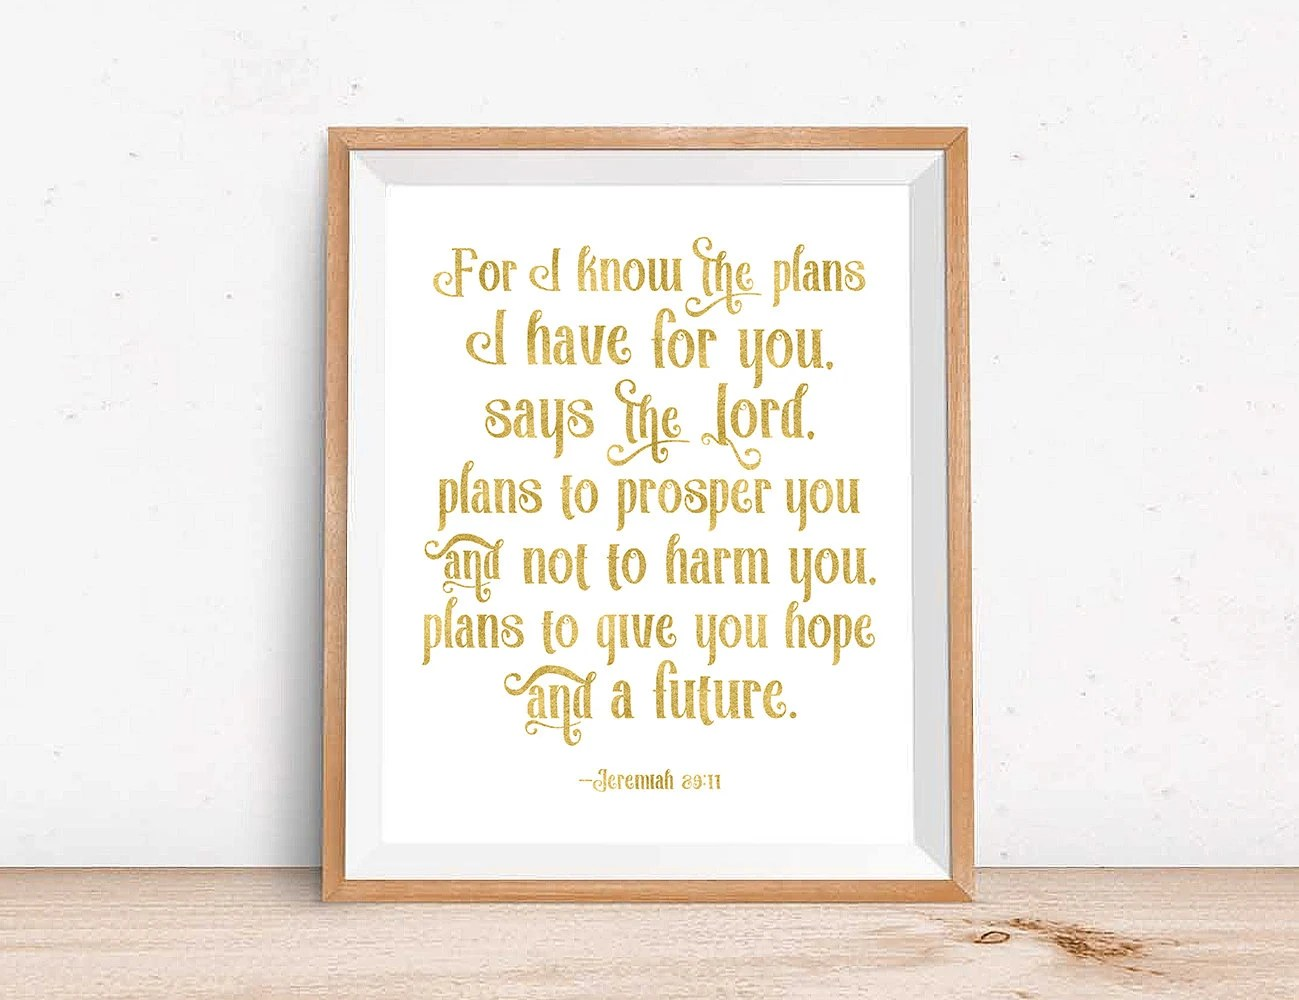 Lord Prosper You Have I And Plans Says Know Y Harm Plans I You Not